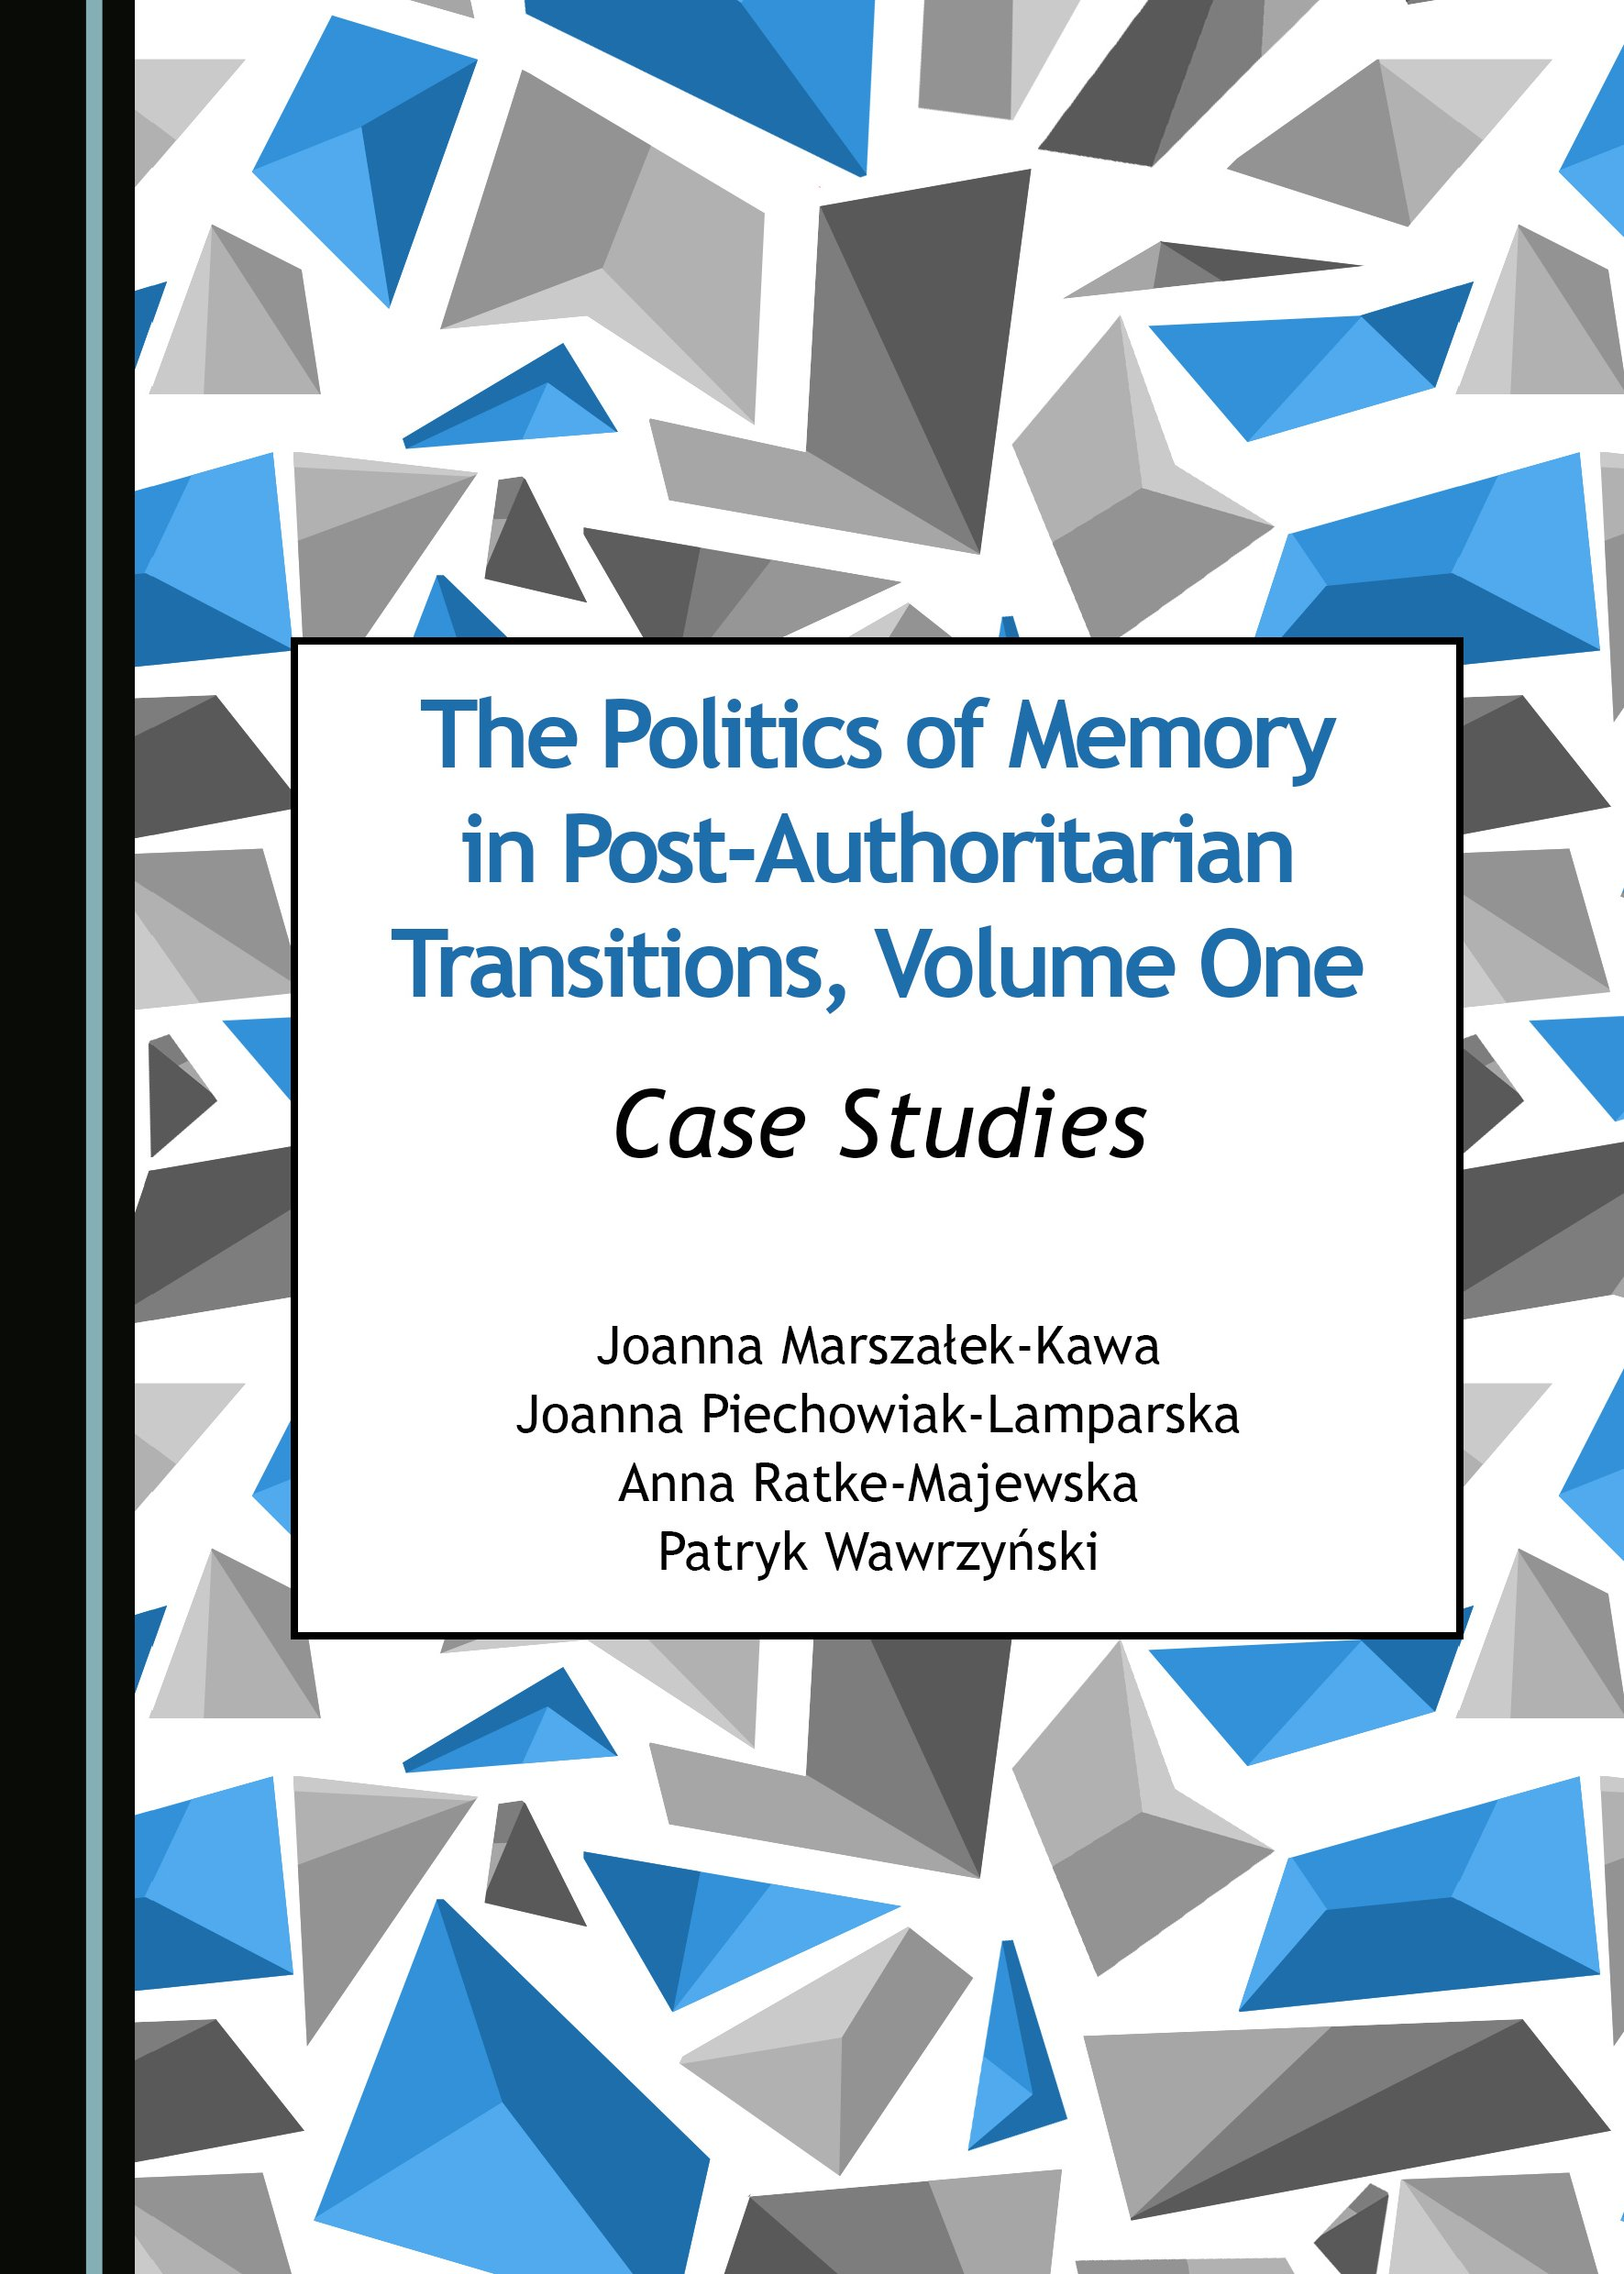 The Politics of Memory in Post-Authoritarian Transitions, Volume One: Case Studies